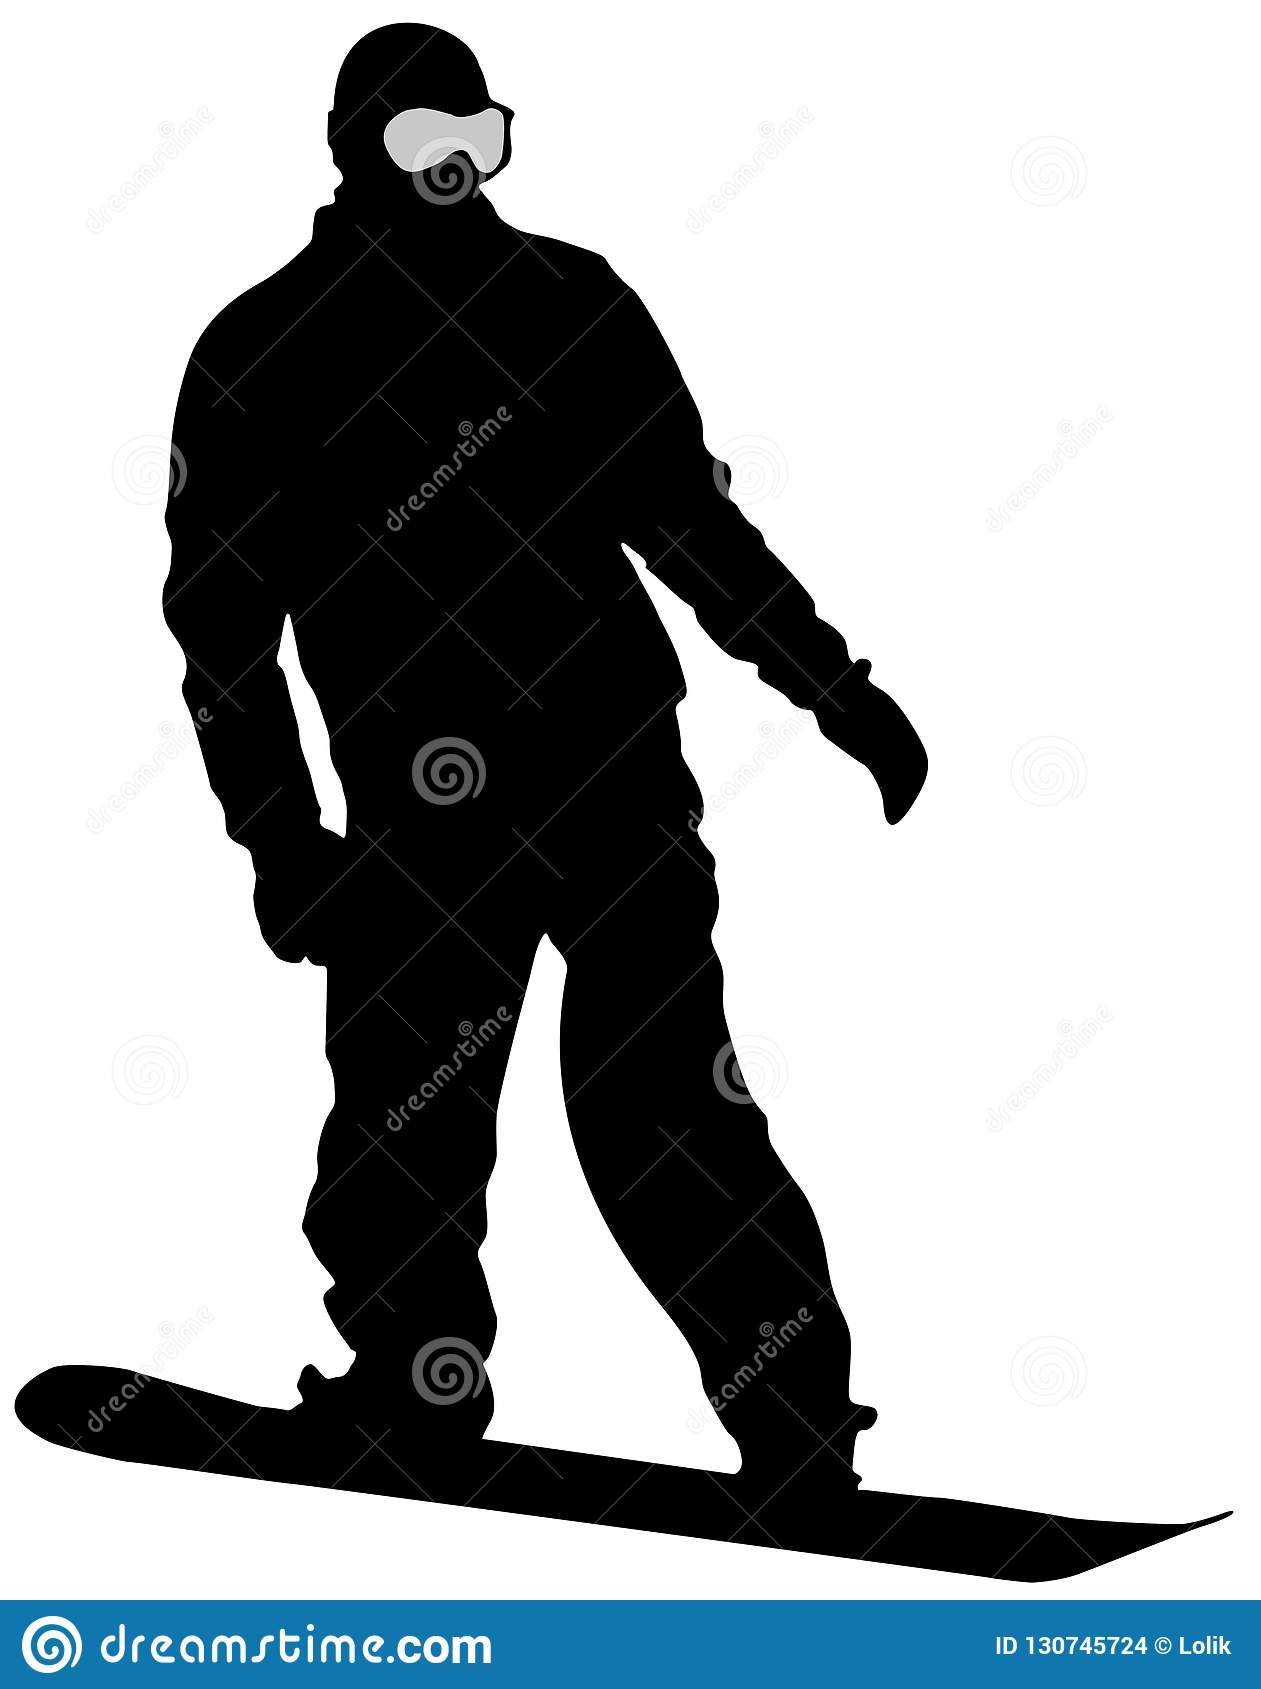 Black Snowboarder Flat Icon on White Background